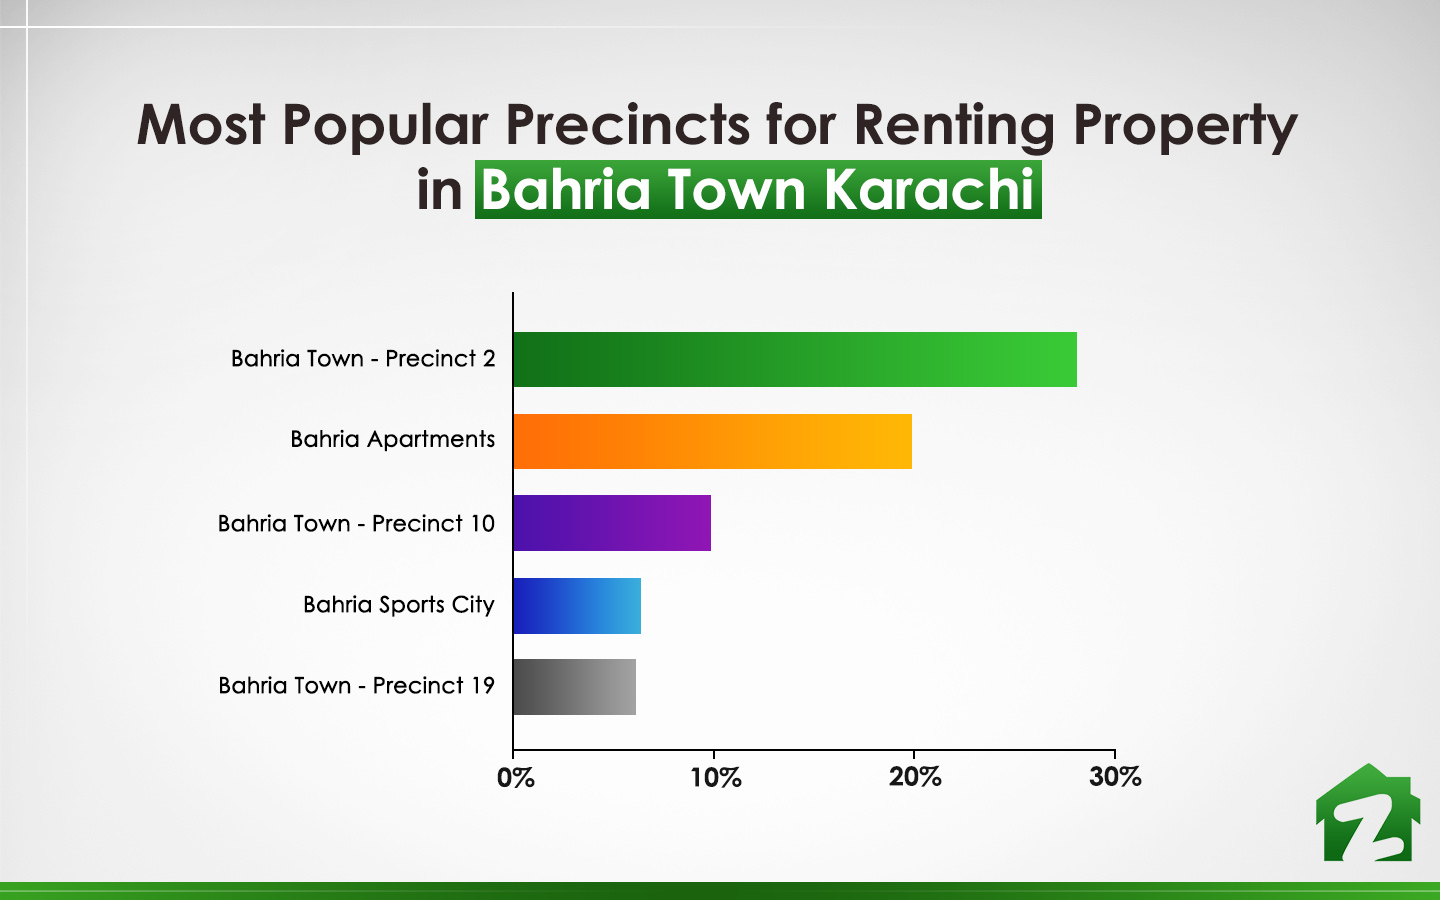 top 5 precincts for renting property in Bahria Town